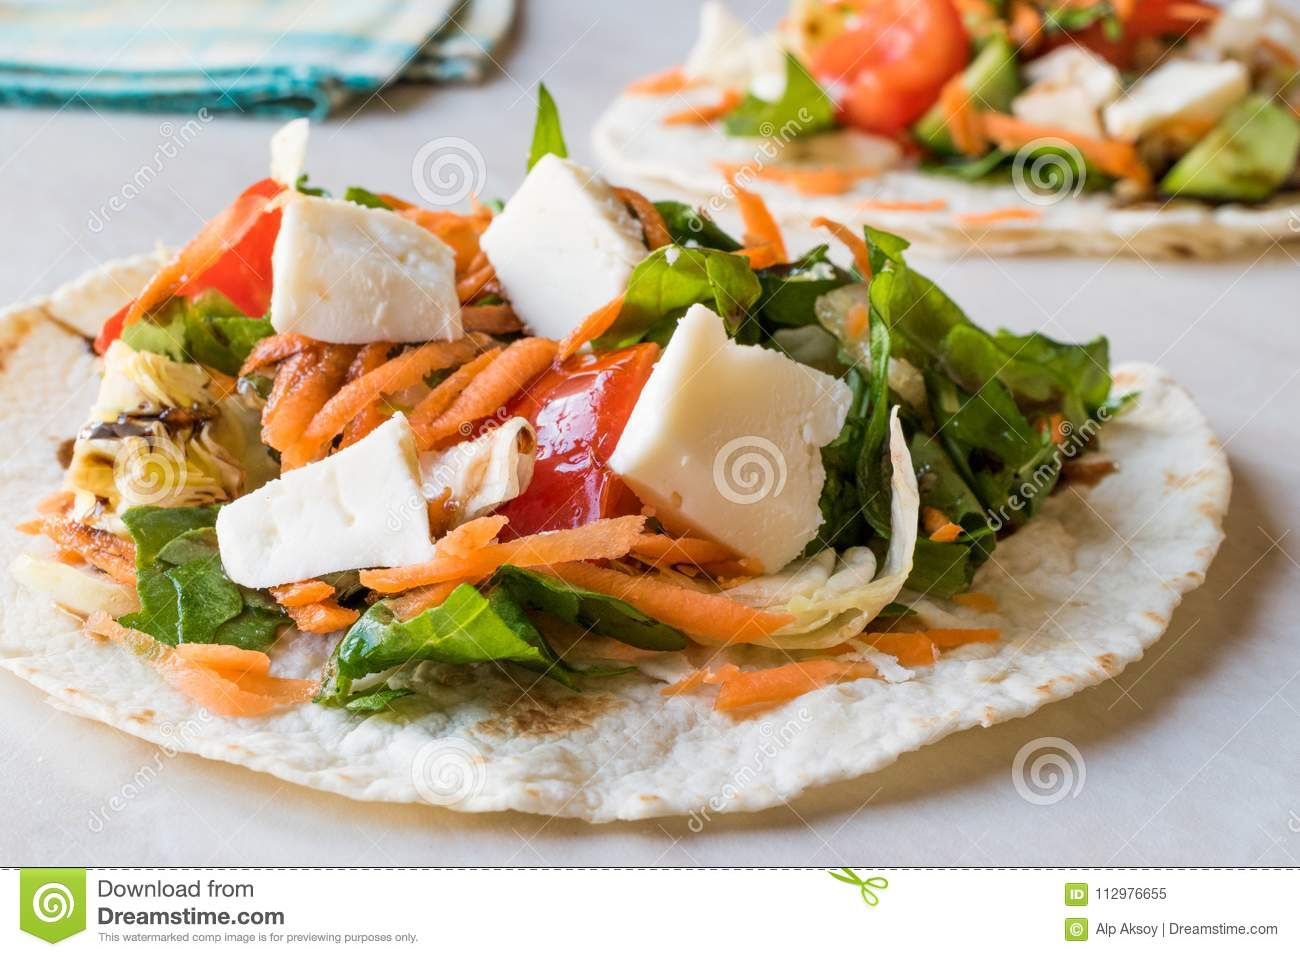 Homemade Vegetarian Tostadas with Salad, Cheese and Grated Carrot Slices.